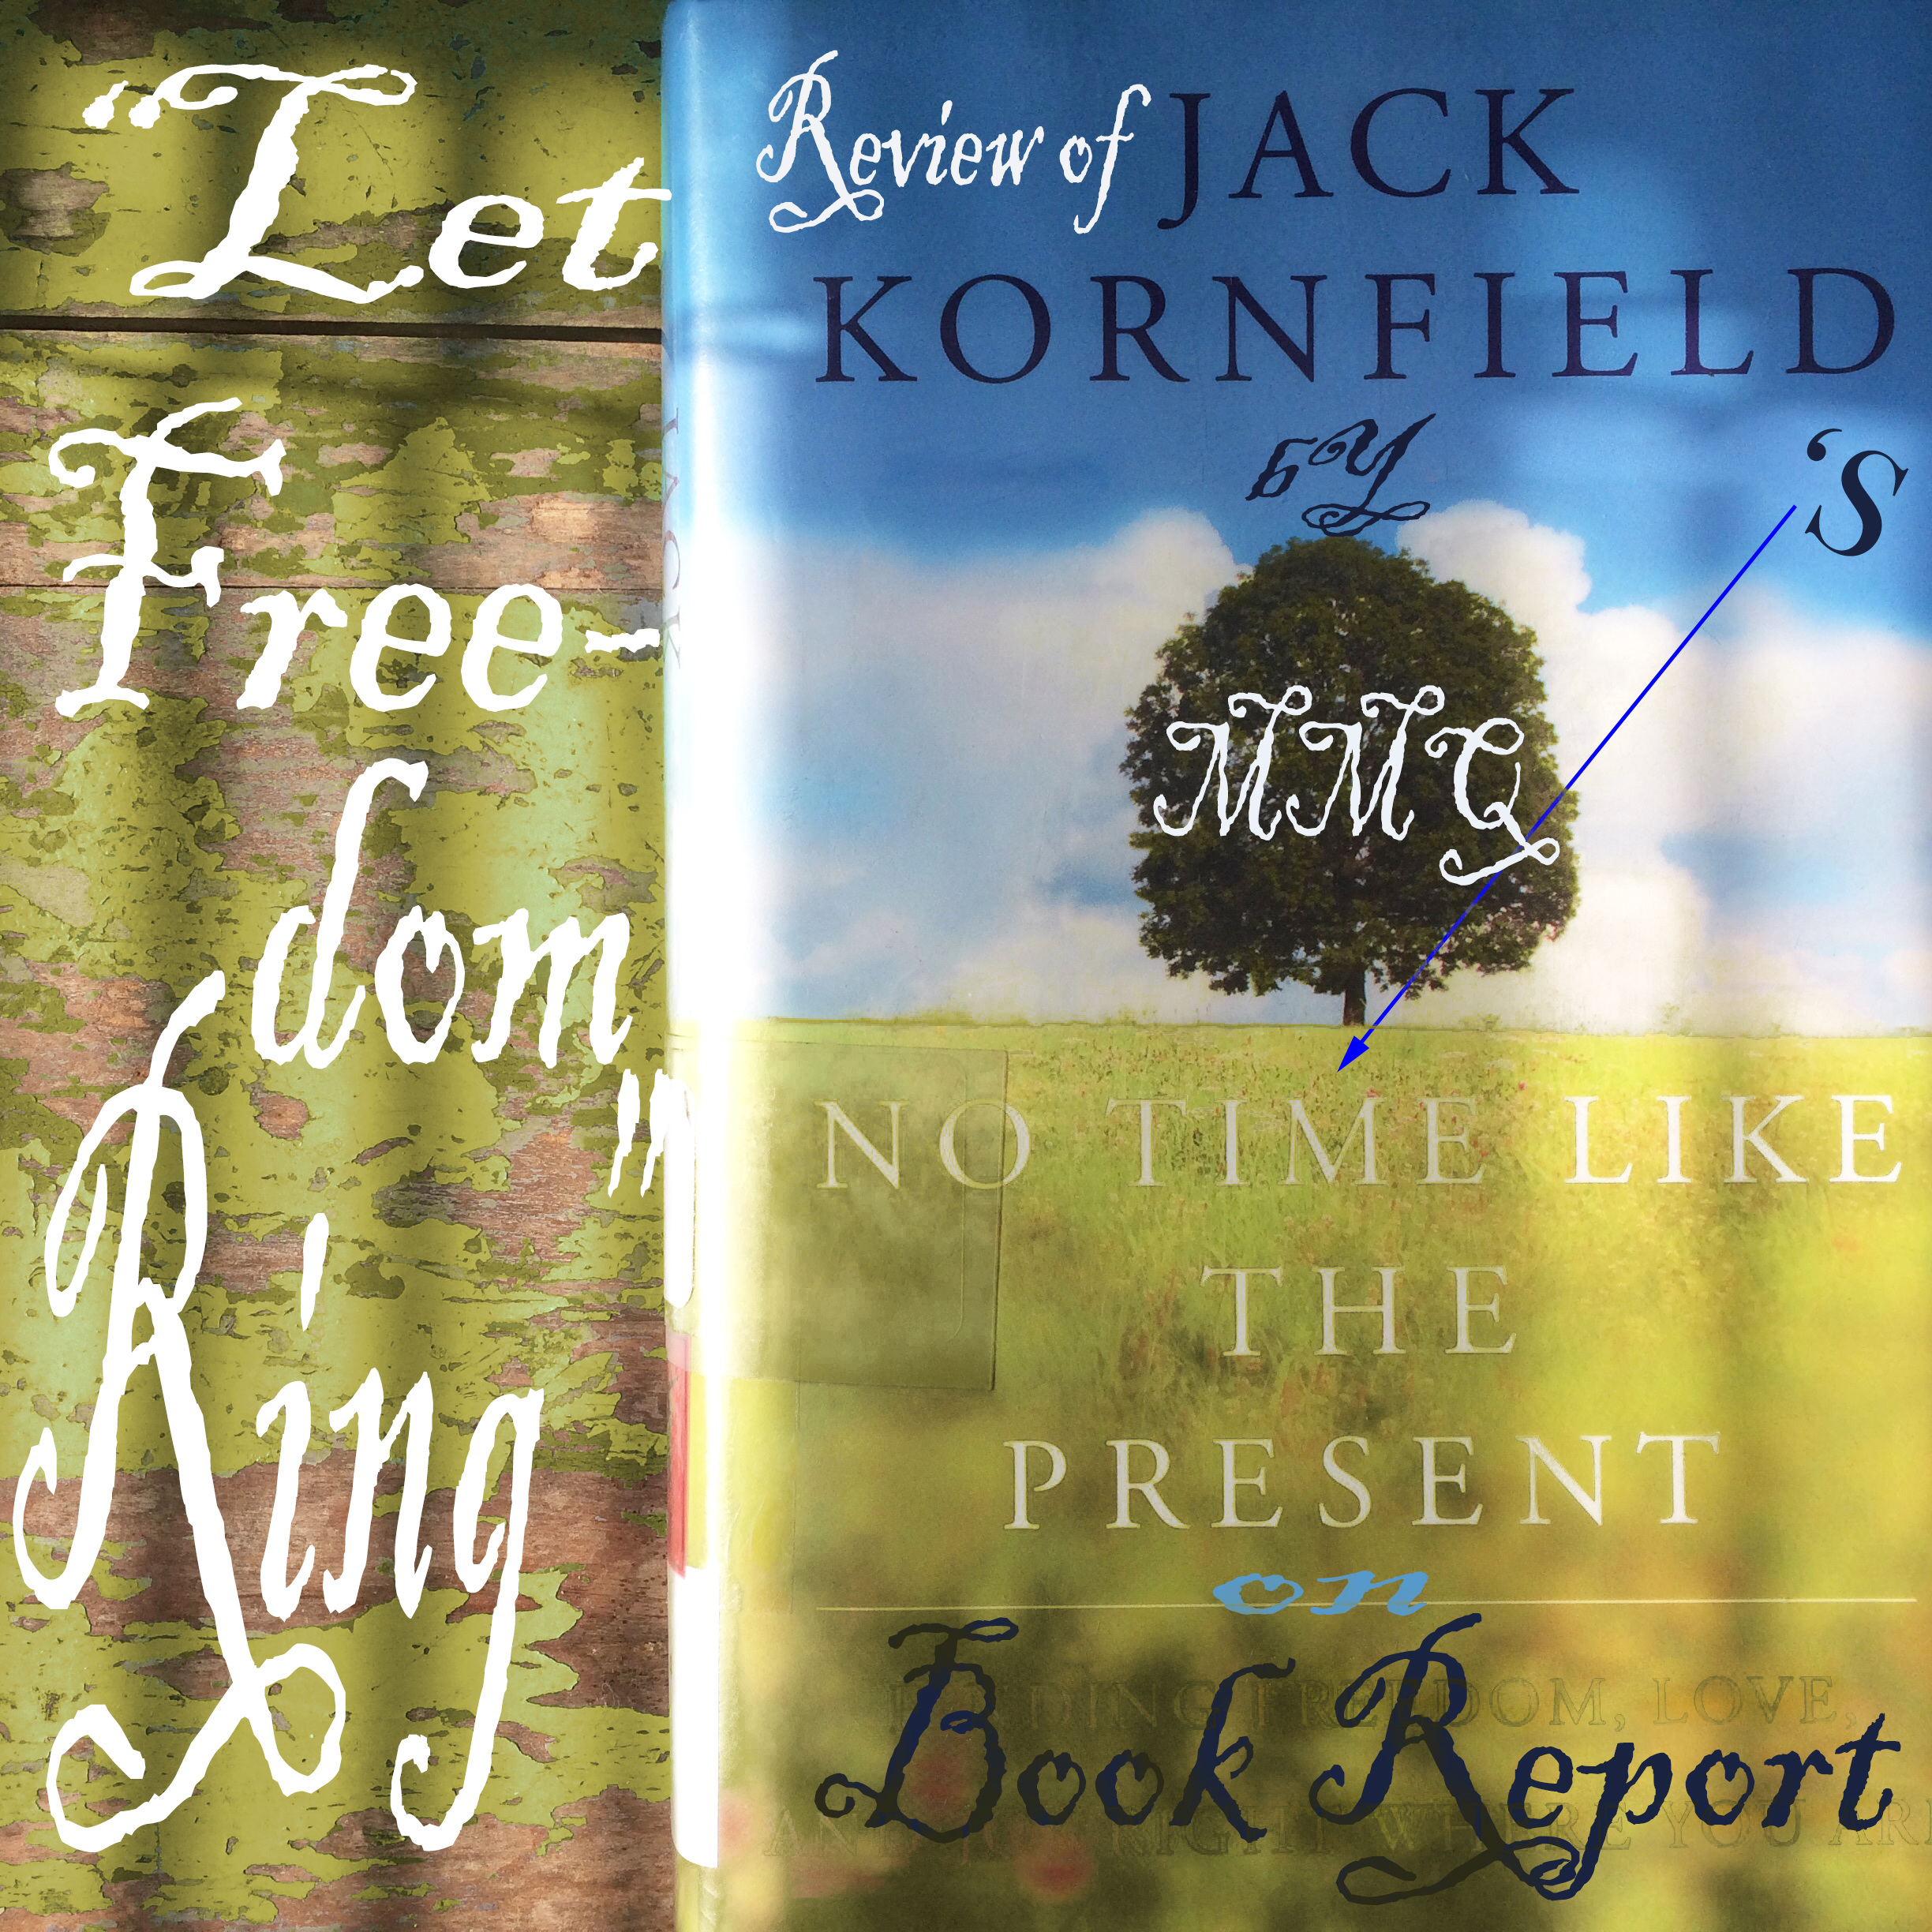 Review of No Time Like the Present by Jack Kornfield